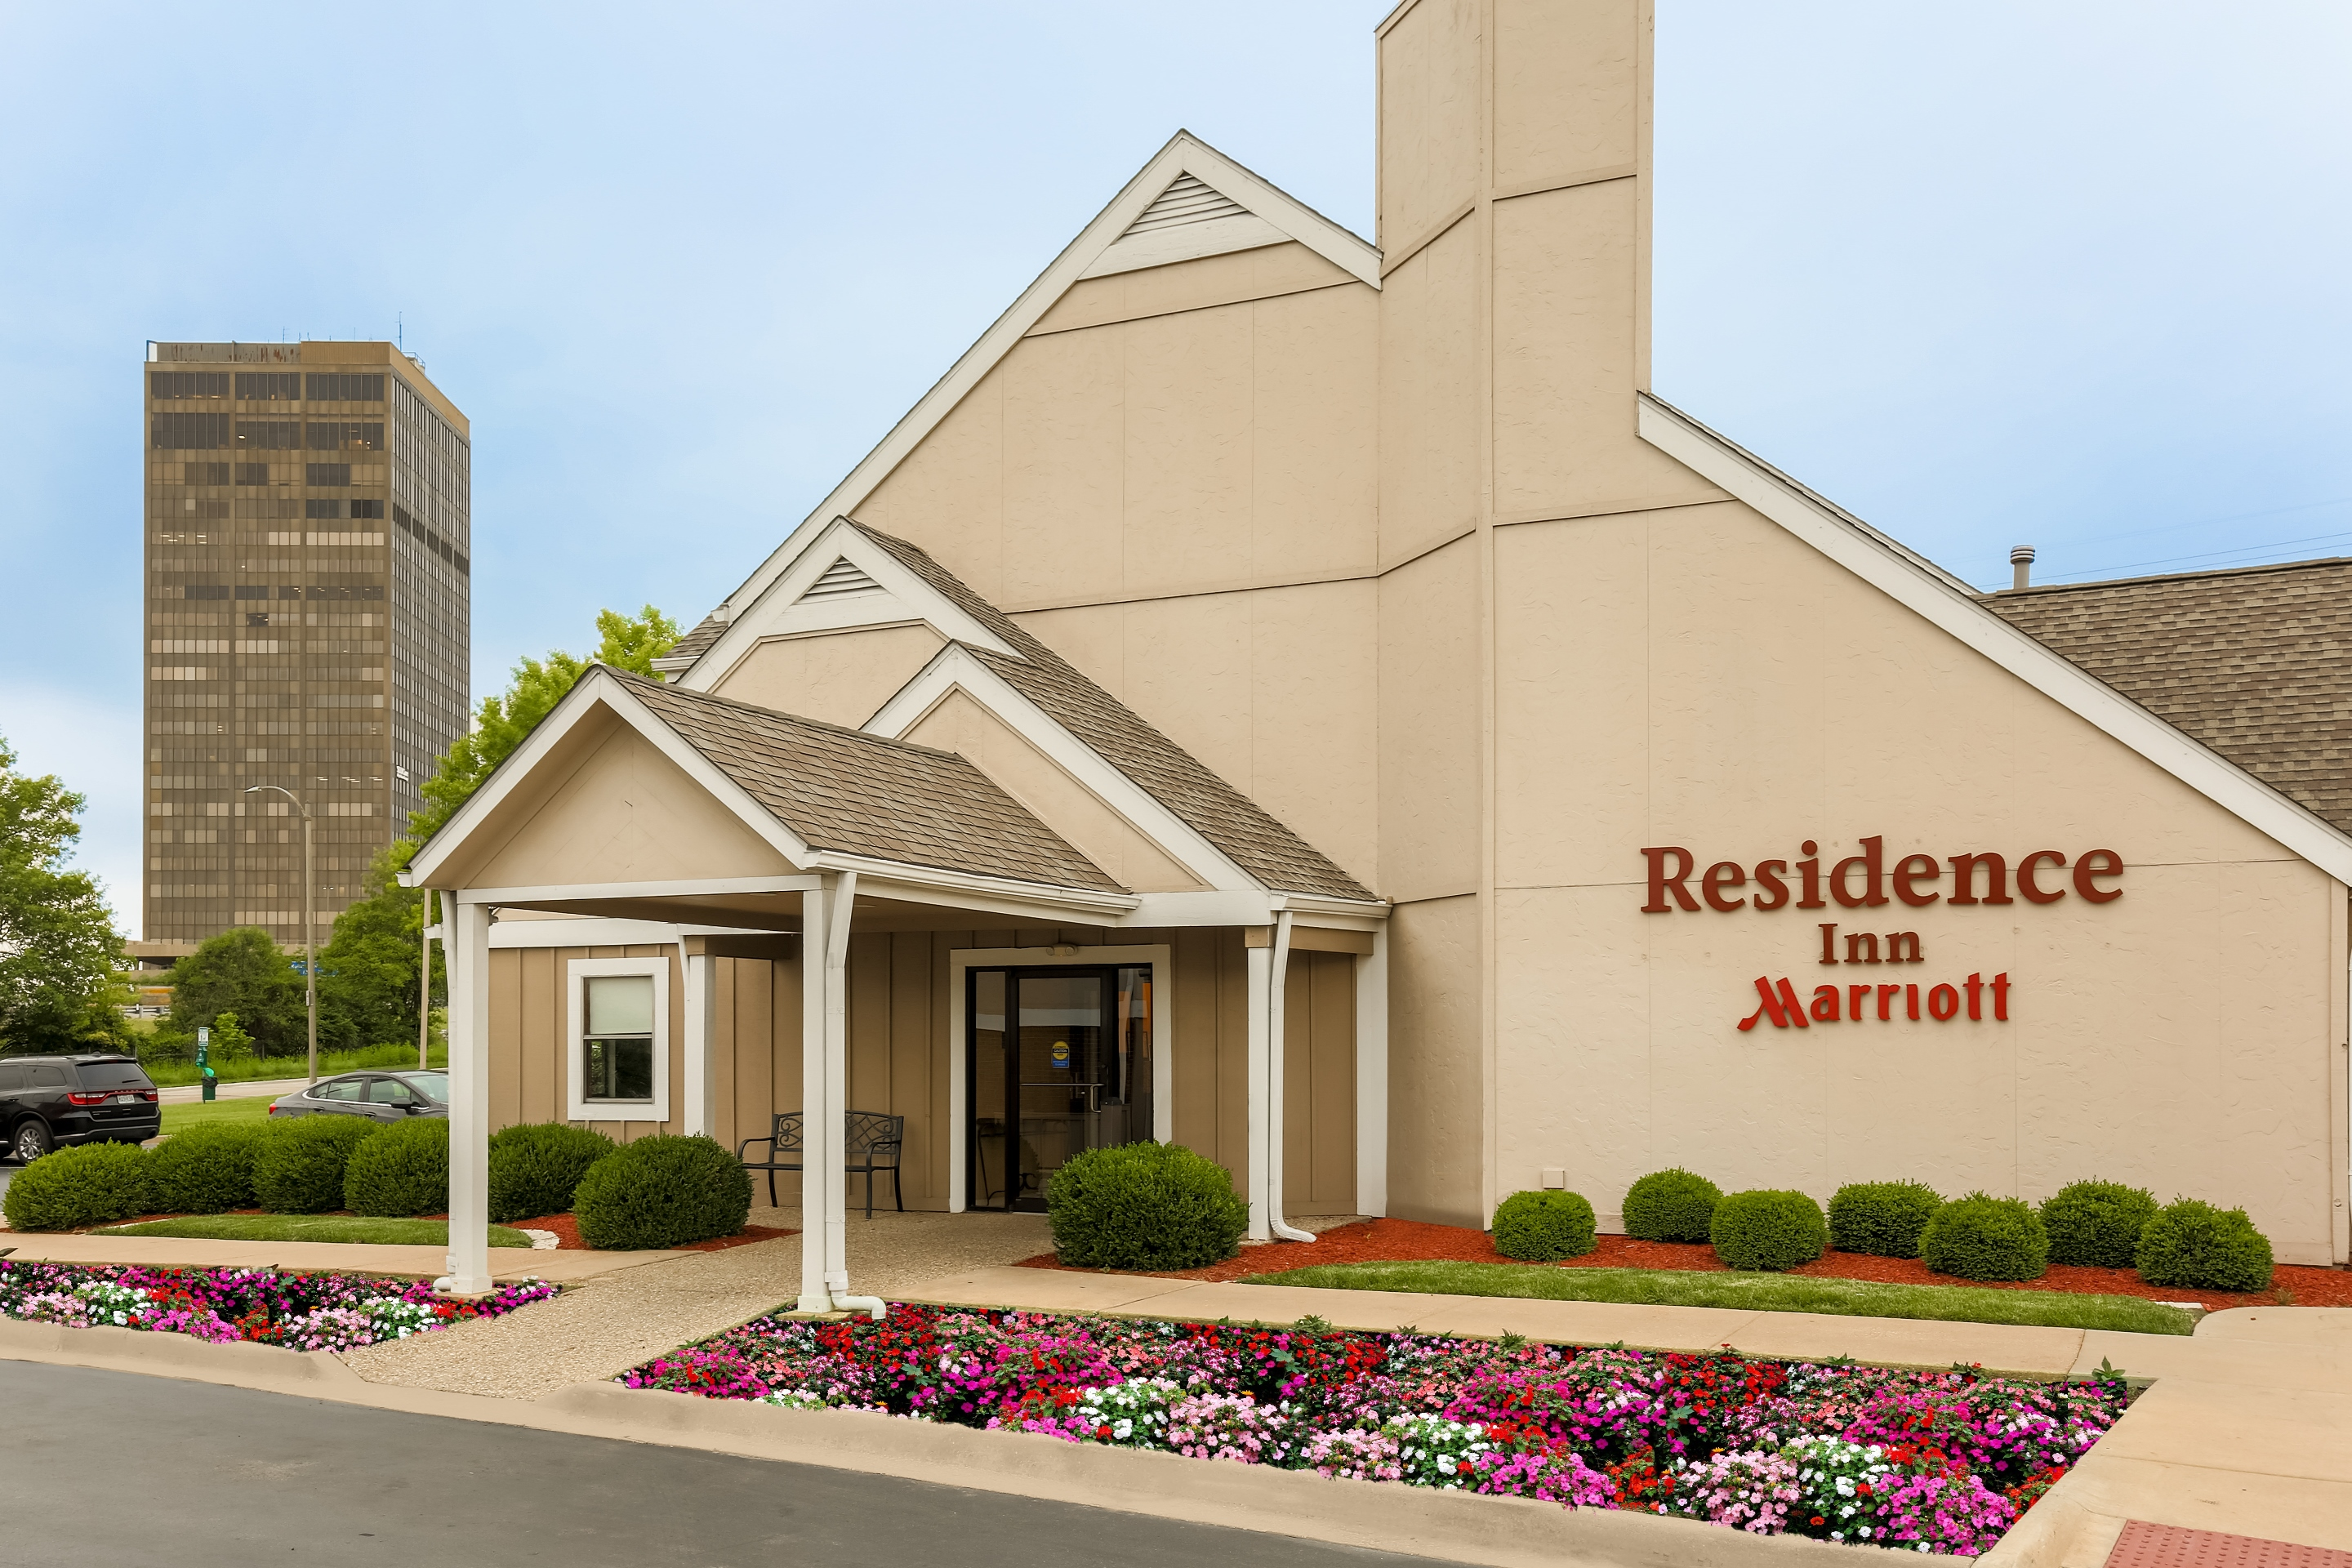 Residence Inn by Marriott St. Louis Galleria image 0